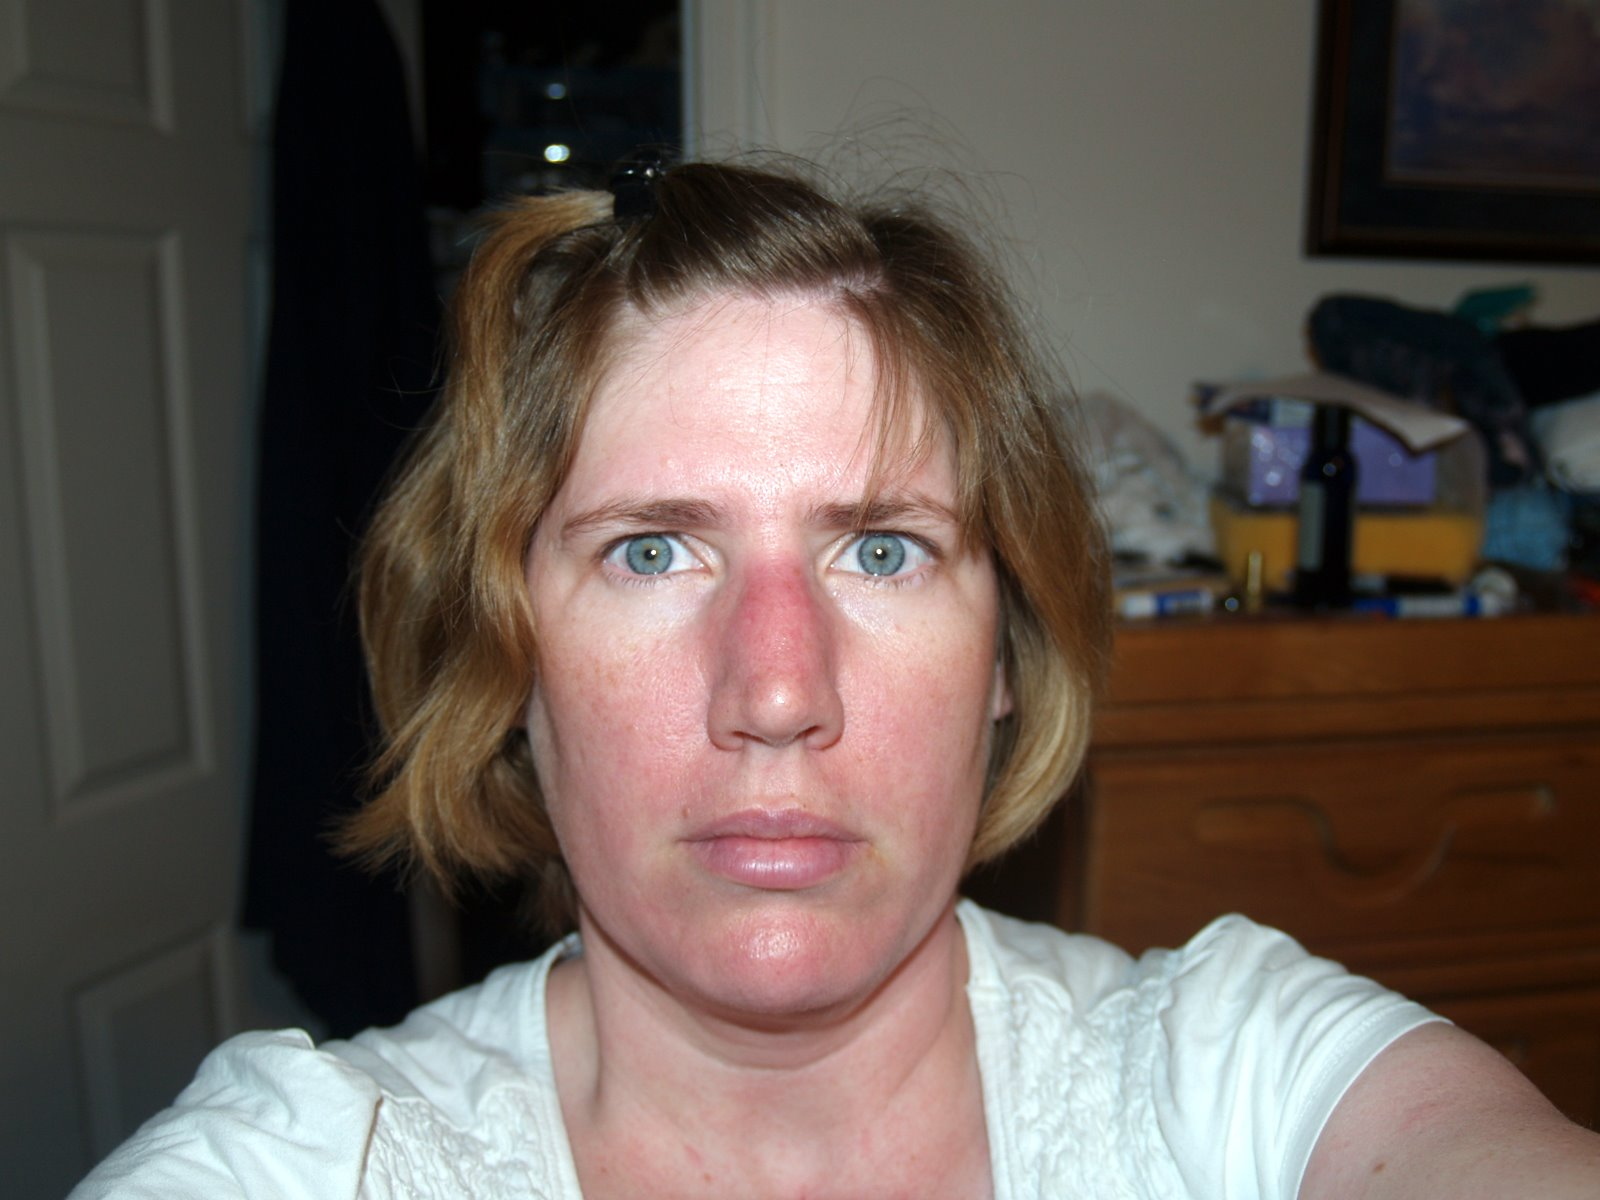 Has horrible dermatologists facial pictures Mmmmmm... wanna her